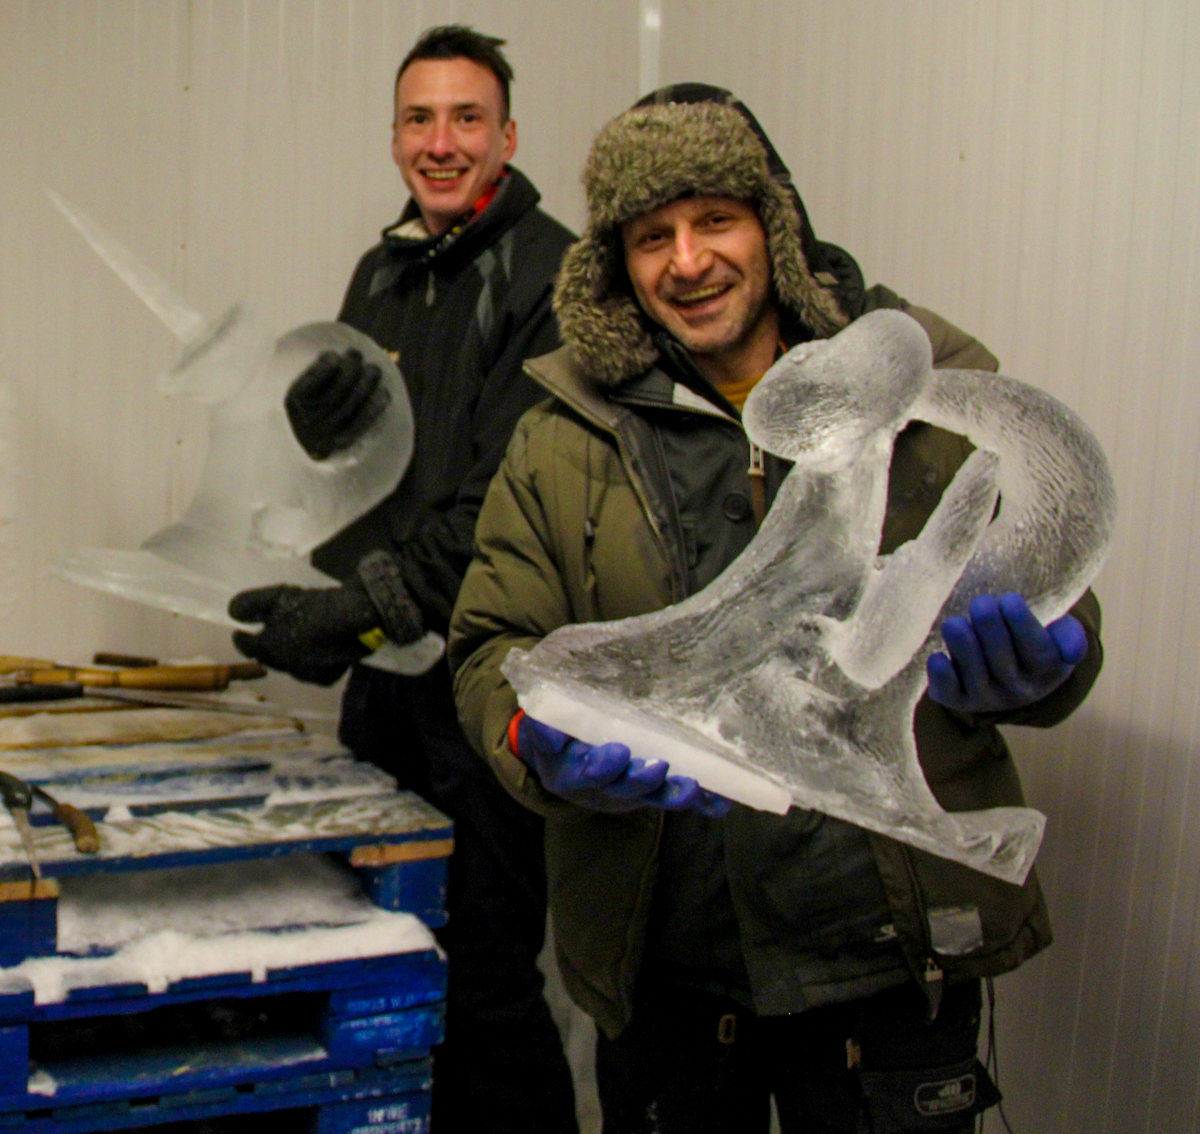 ice_sculpture_experience_day_corporate_team_building_events_yorkshire_lancashire-2